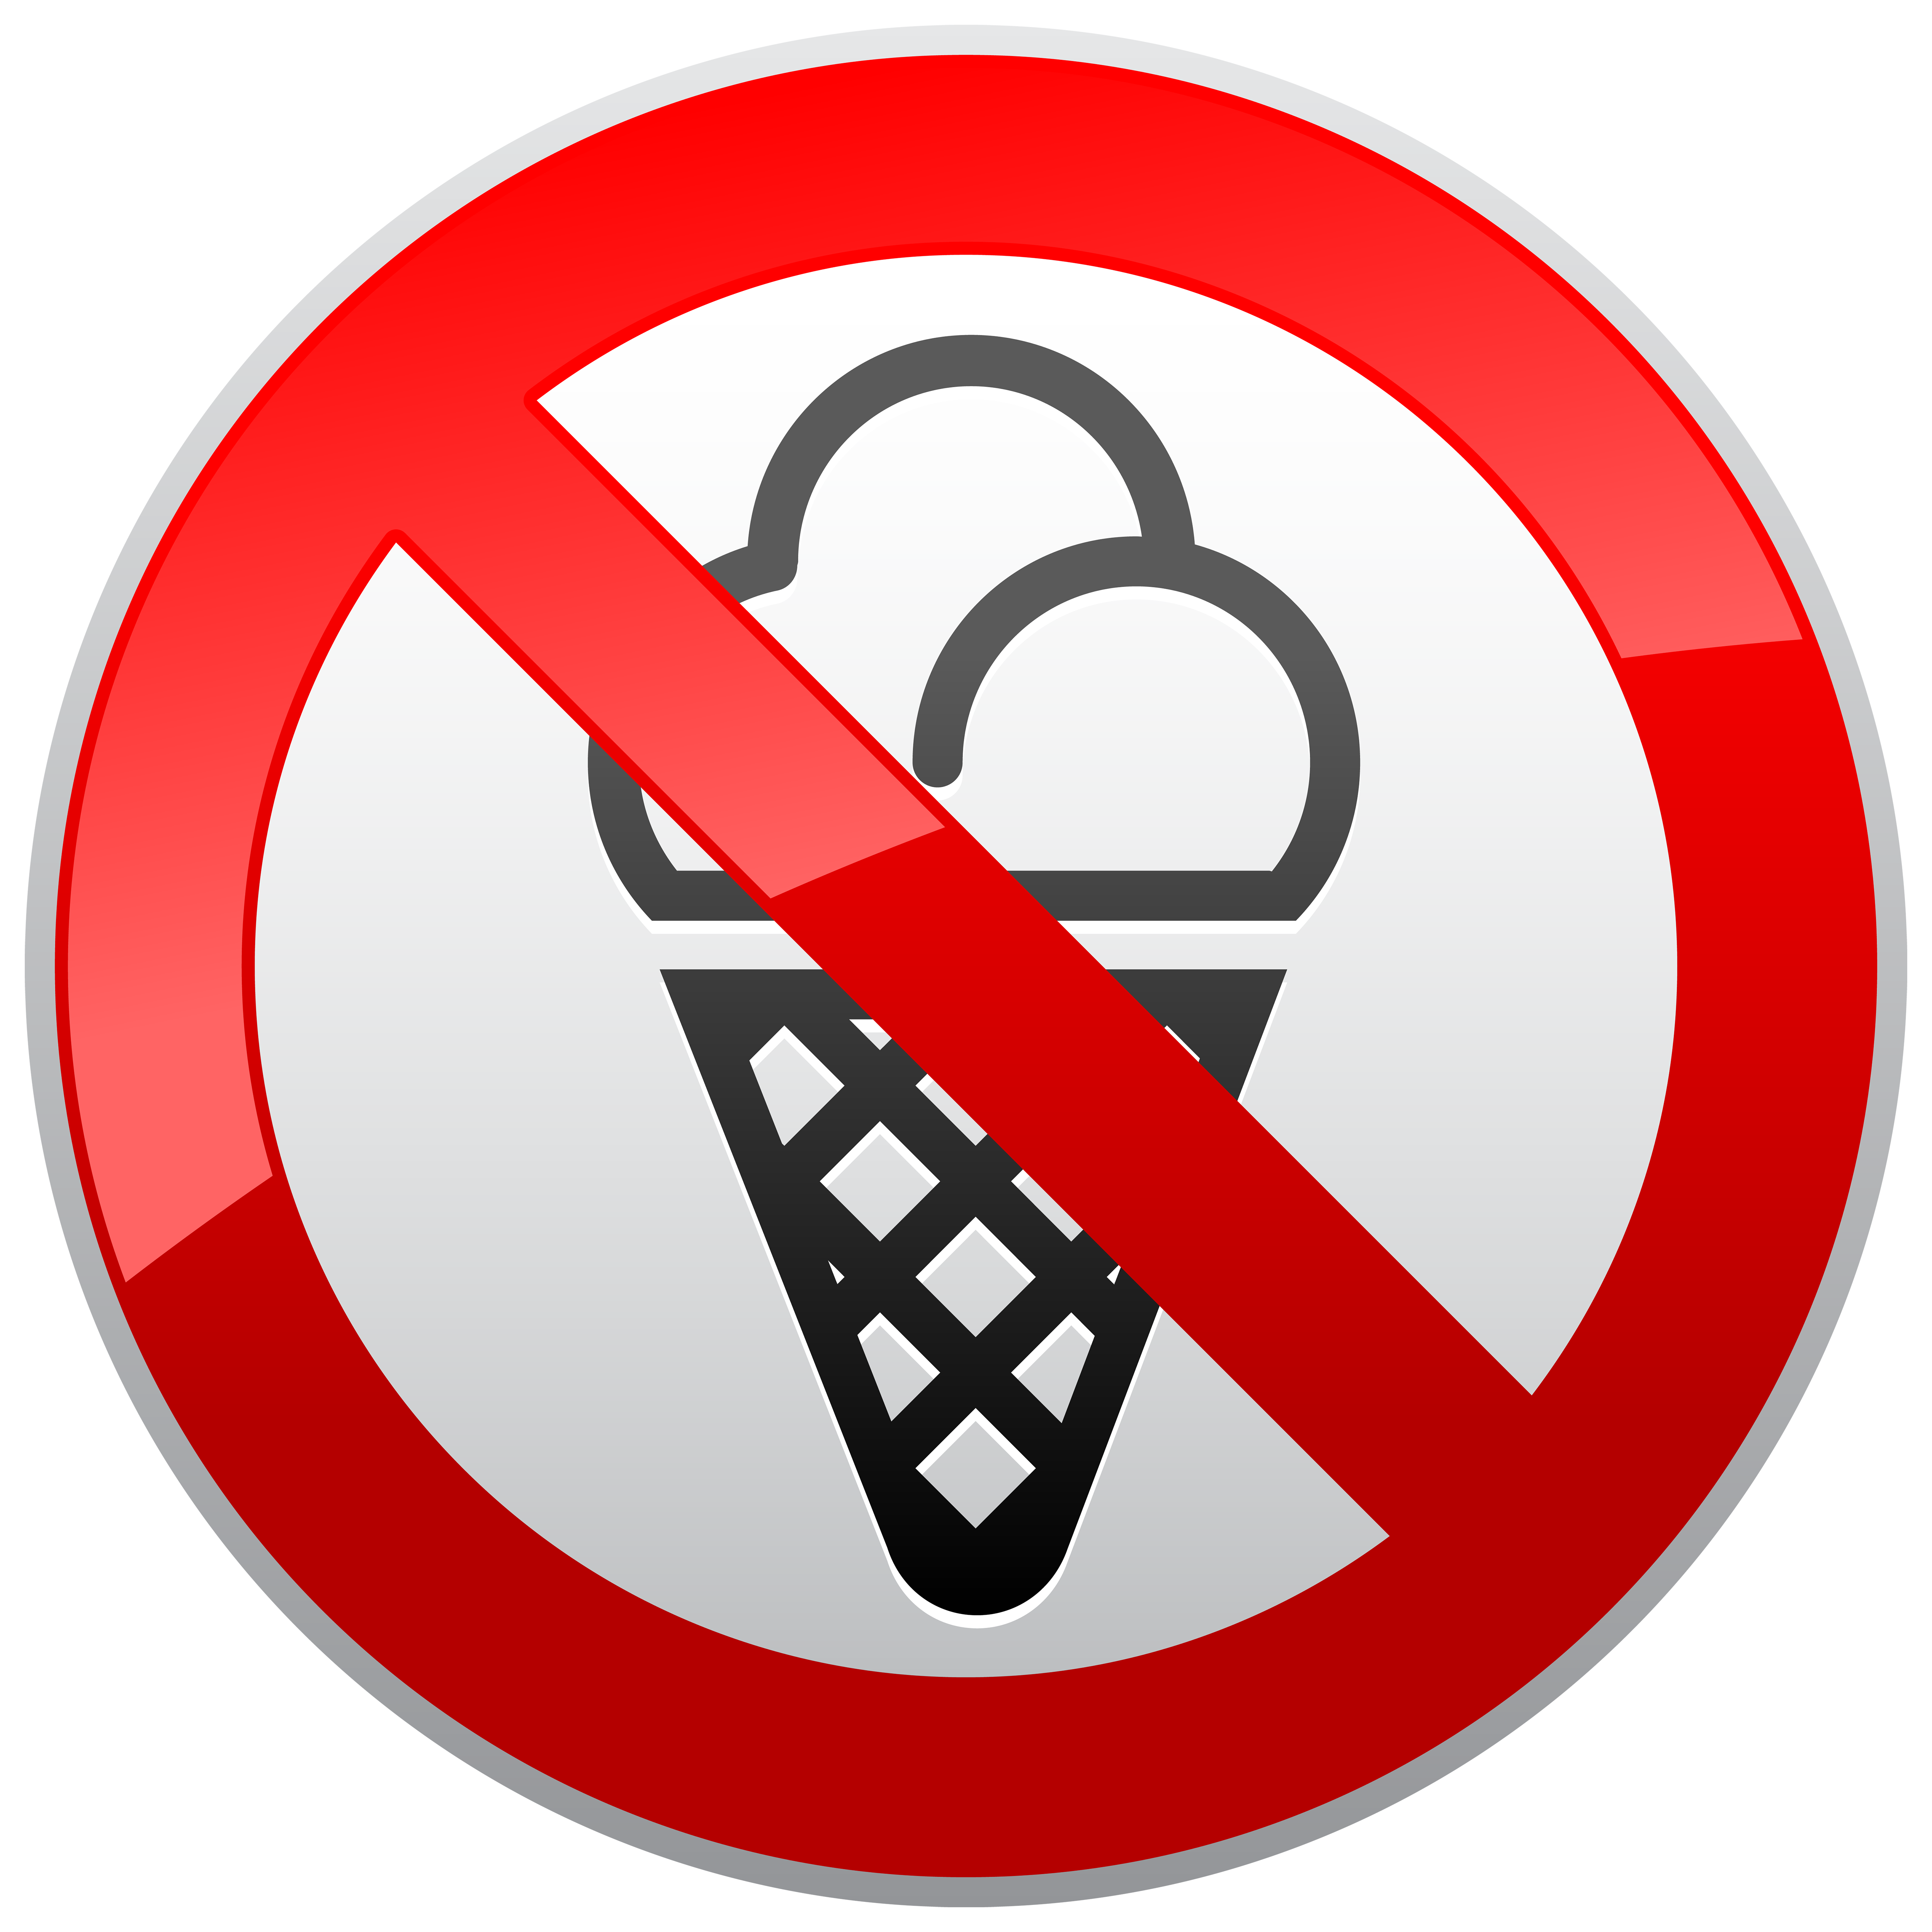 No Ice Cream Prohibition Sign PNG Clipart.